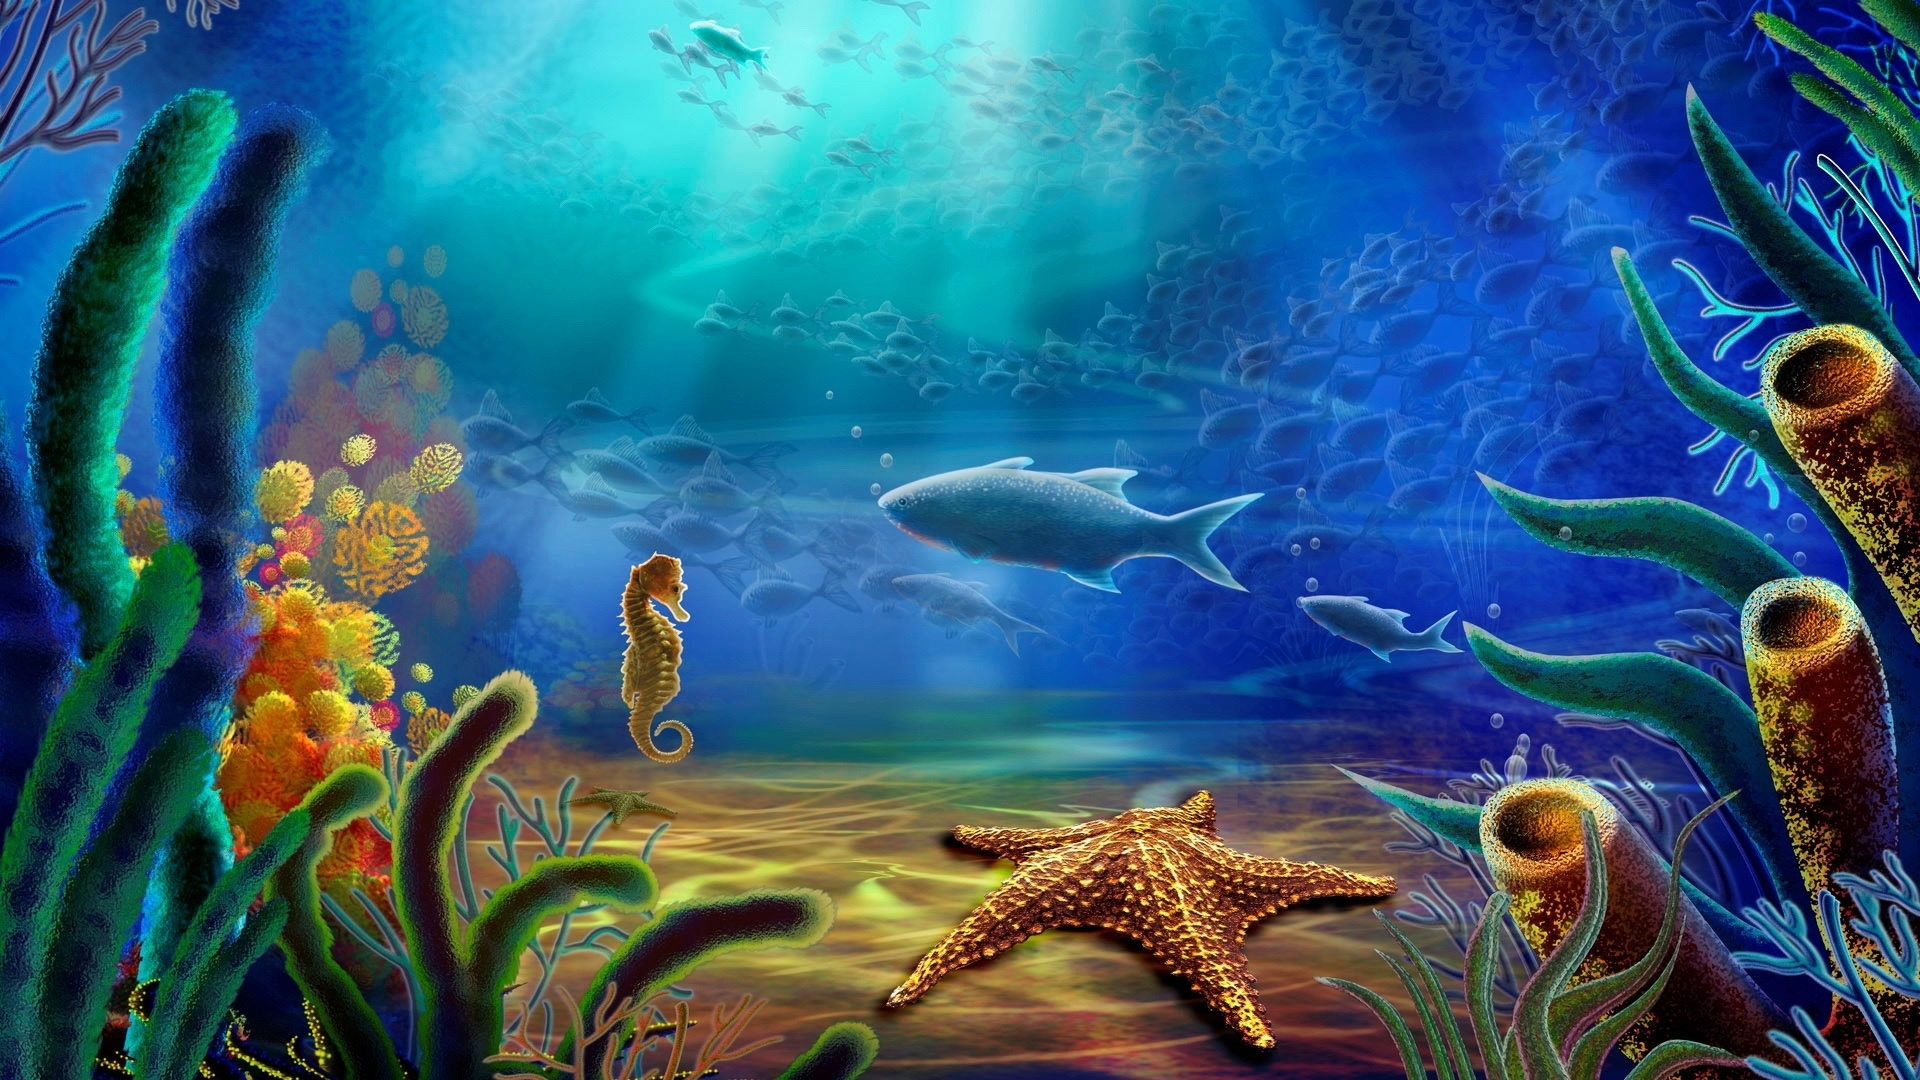 Under Water 3D View for 1920 x 1080 HDTV 1080p resolution 1920x1080